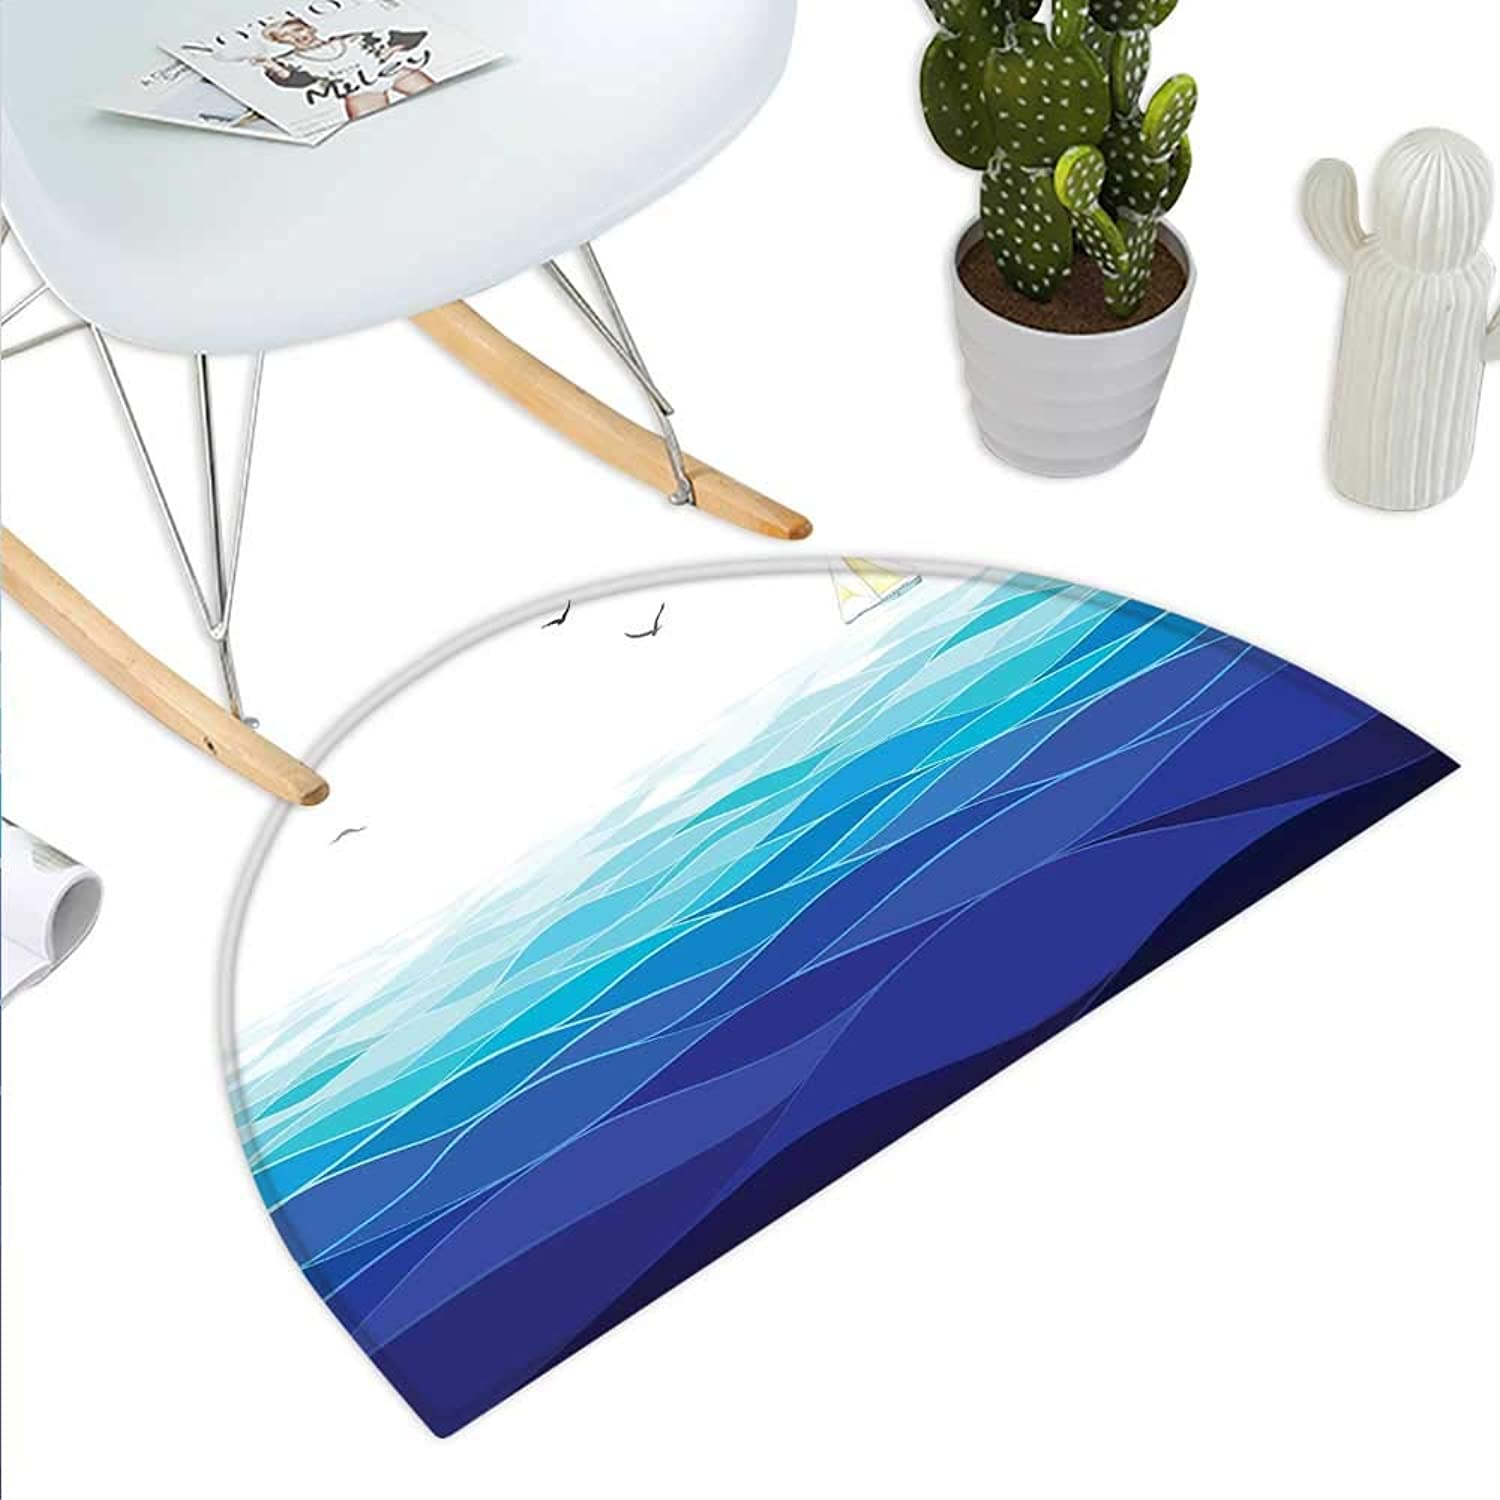 Aqua Semicircle Doormat Graphic Ocean Waves Sailboat with Birds Seagulls Seascape Horizon Maritime Halfmoon doormats H 43.3  xD 64.9  Navy bluee Aqua White